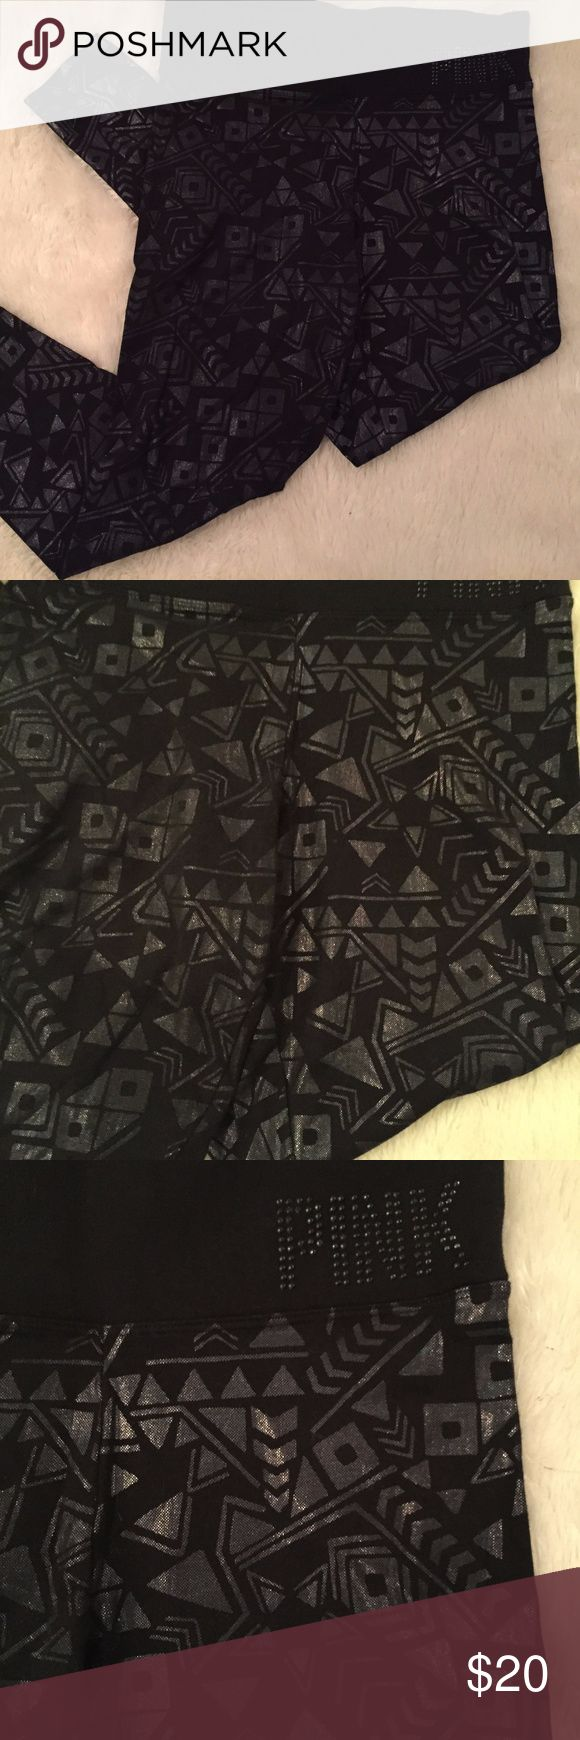 """VS Pink Black Metallic Tribal Print Leggings Great condition leggings from VS Pink. Very unique metallic black tribal print pattern all over with a rhinestone """"PINK"""" on the waistband.   Measurements: Waistband: 14.5"""" Inseam: 27.5"""" PINK Victoria's Secret Pants Leggings"""